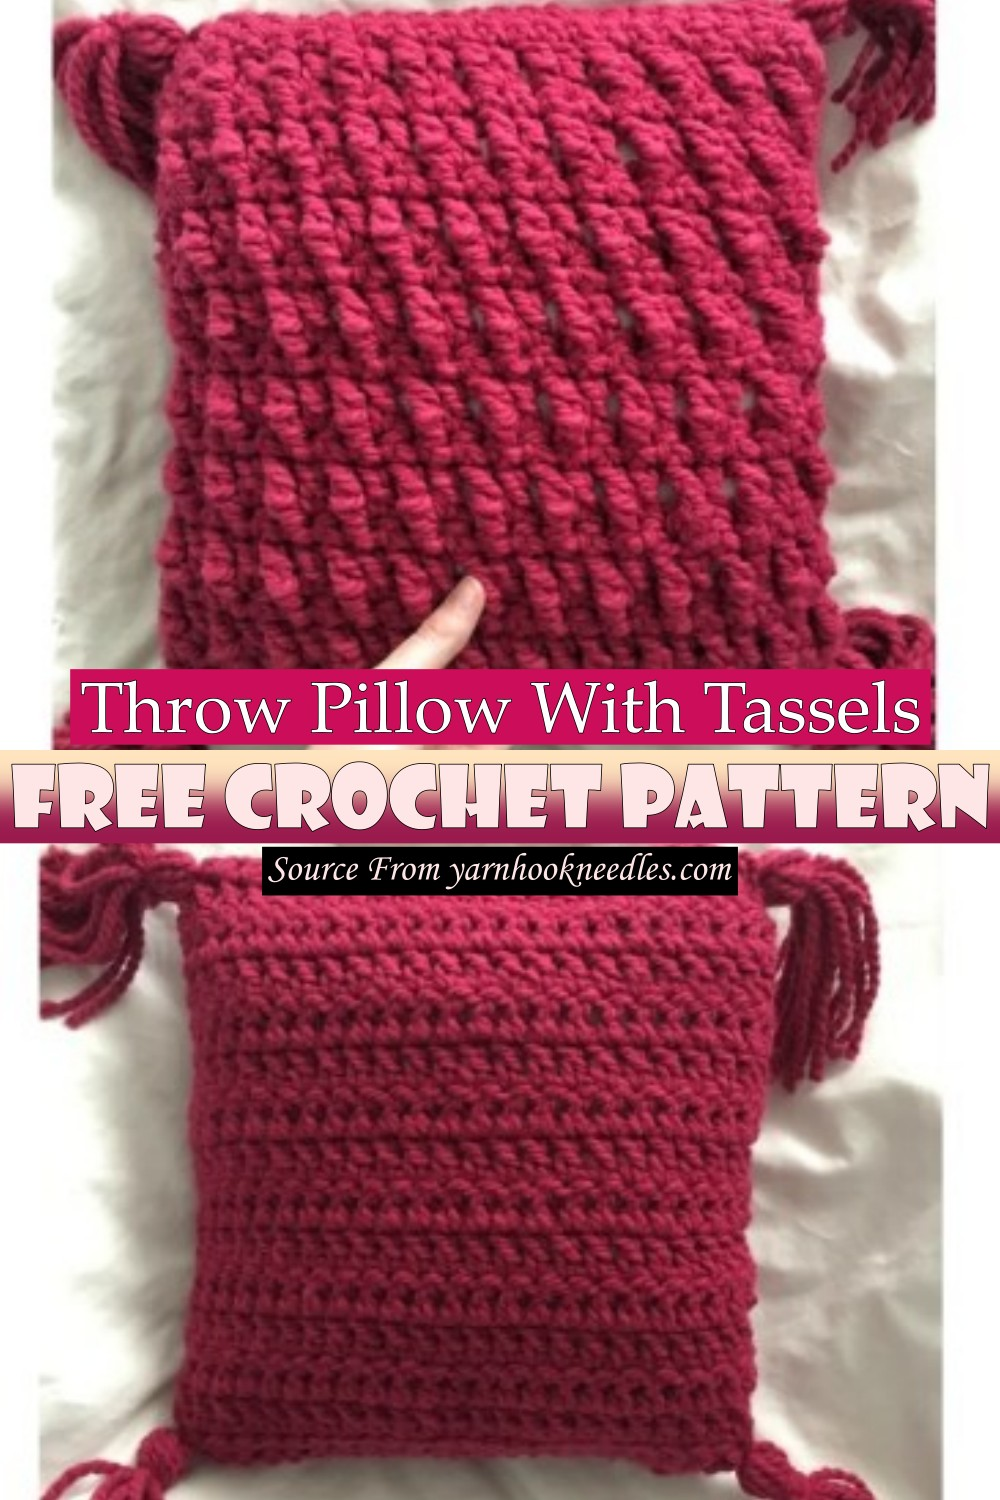 Free Crochet Throw Pillow With Tassels Pattern